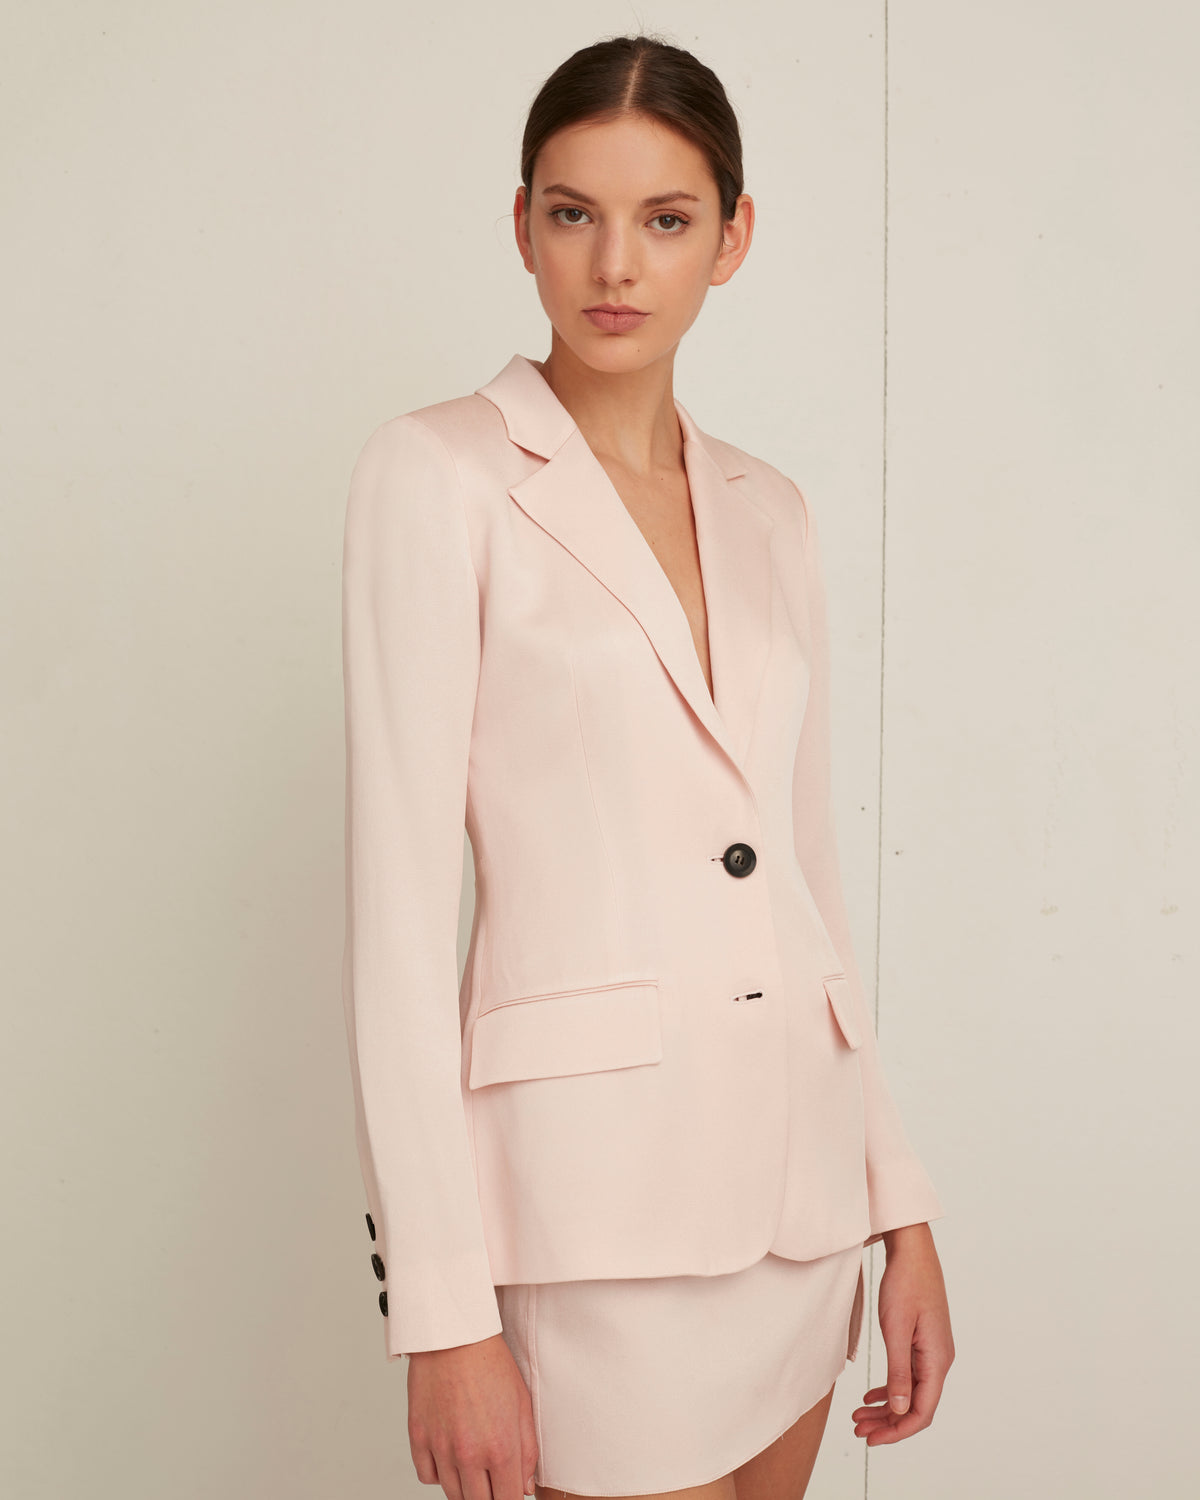 Lois Satin Crepe Blazer in Blush